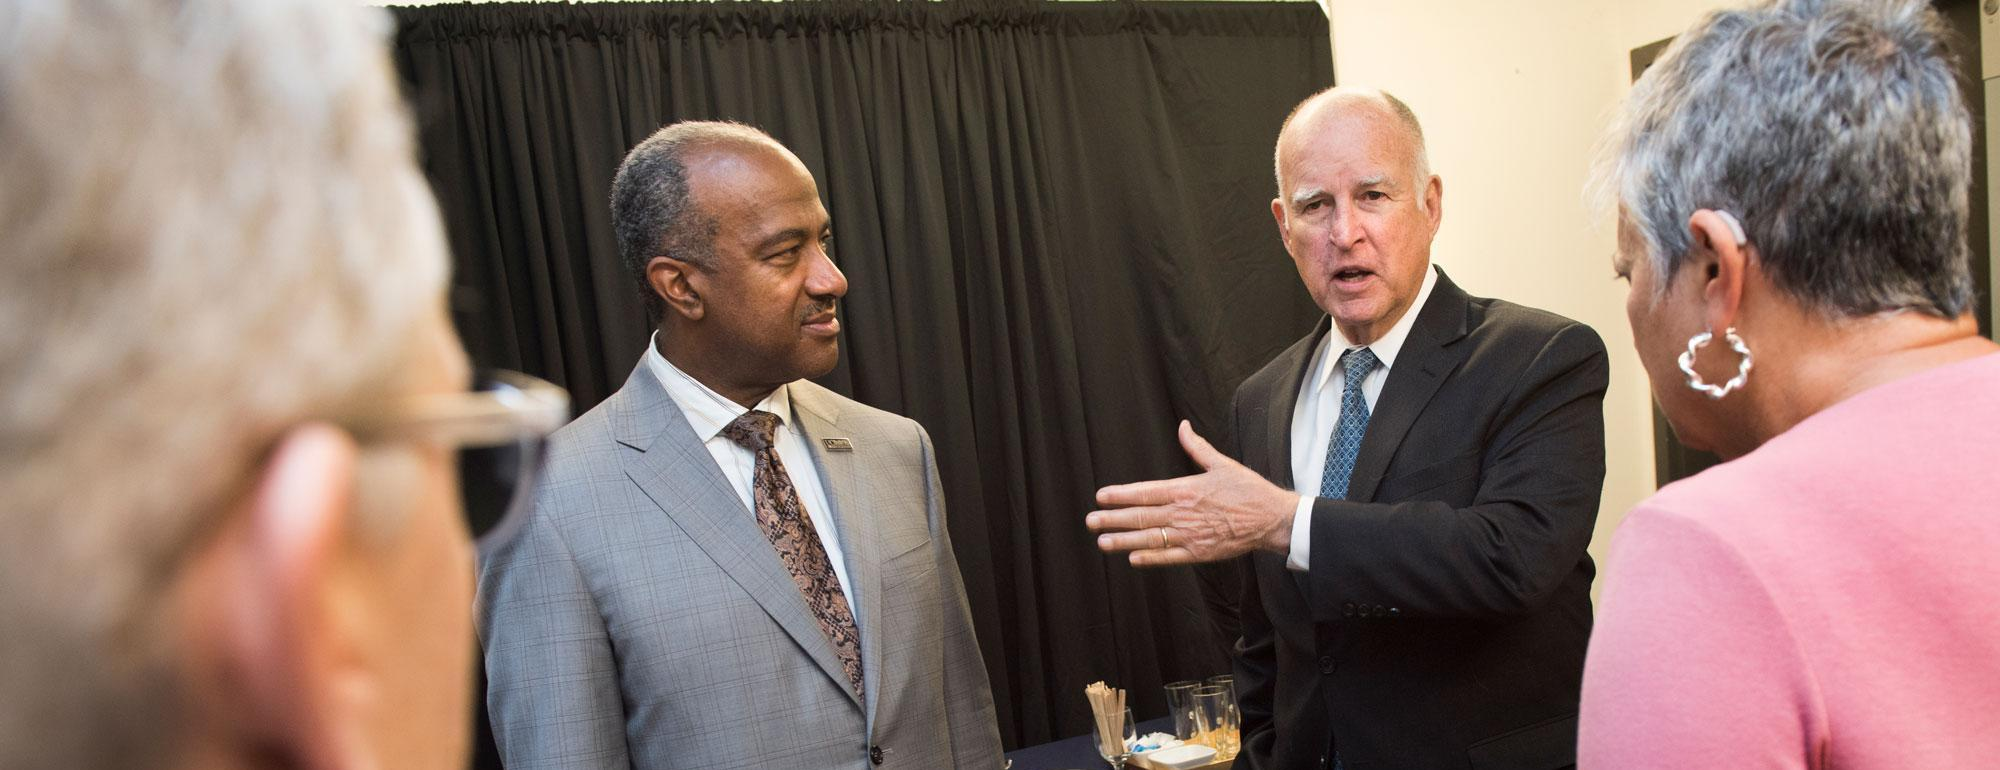 chancellor may with governor brown photo